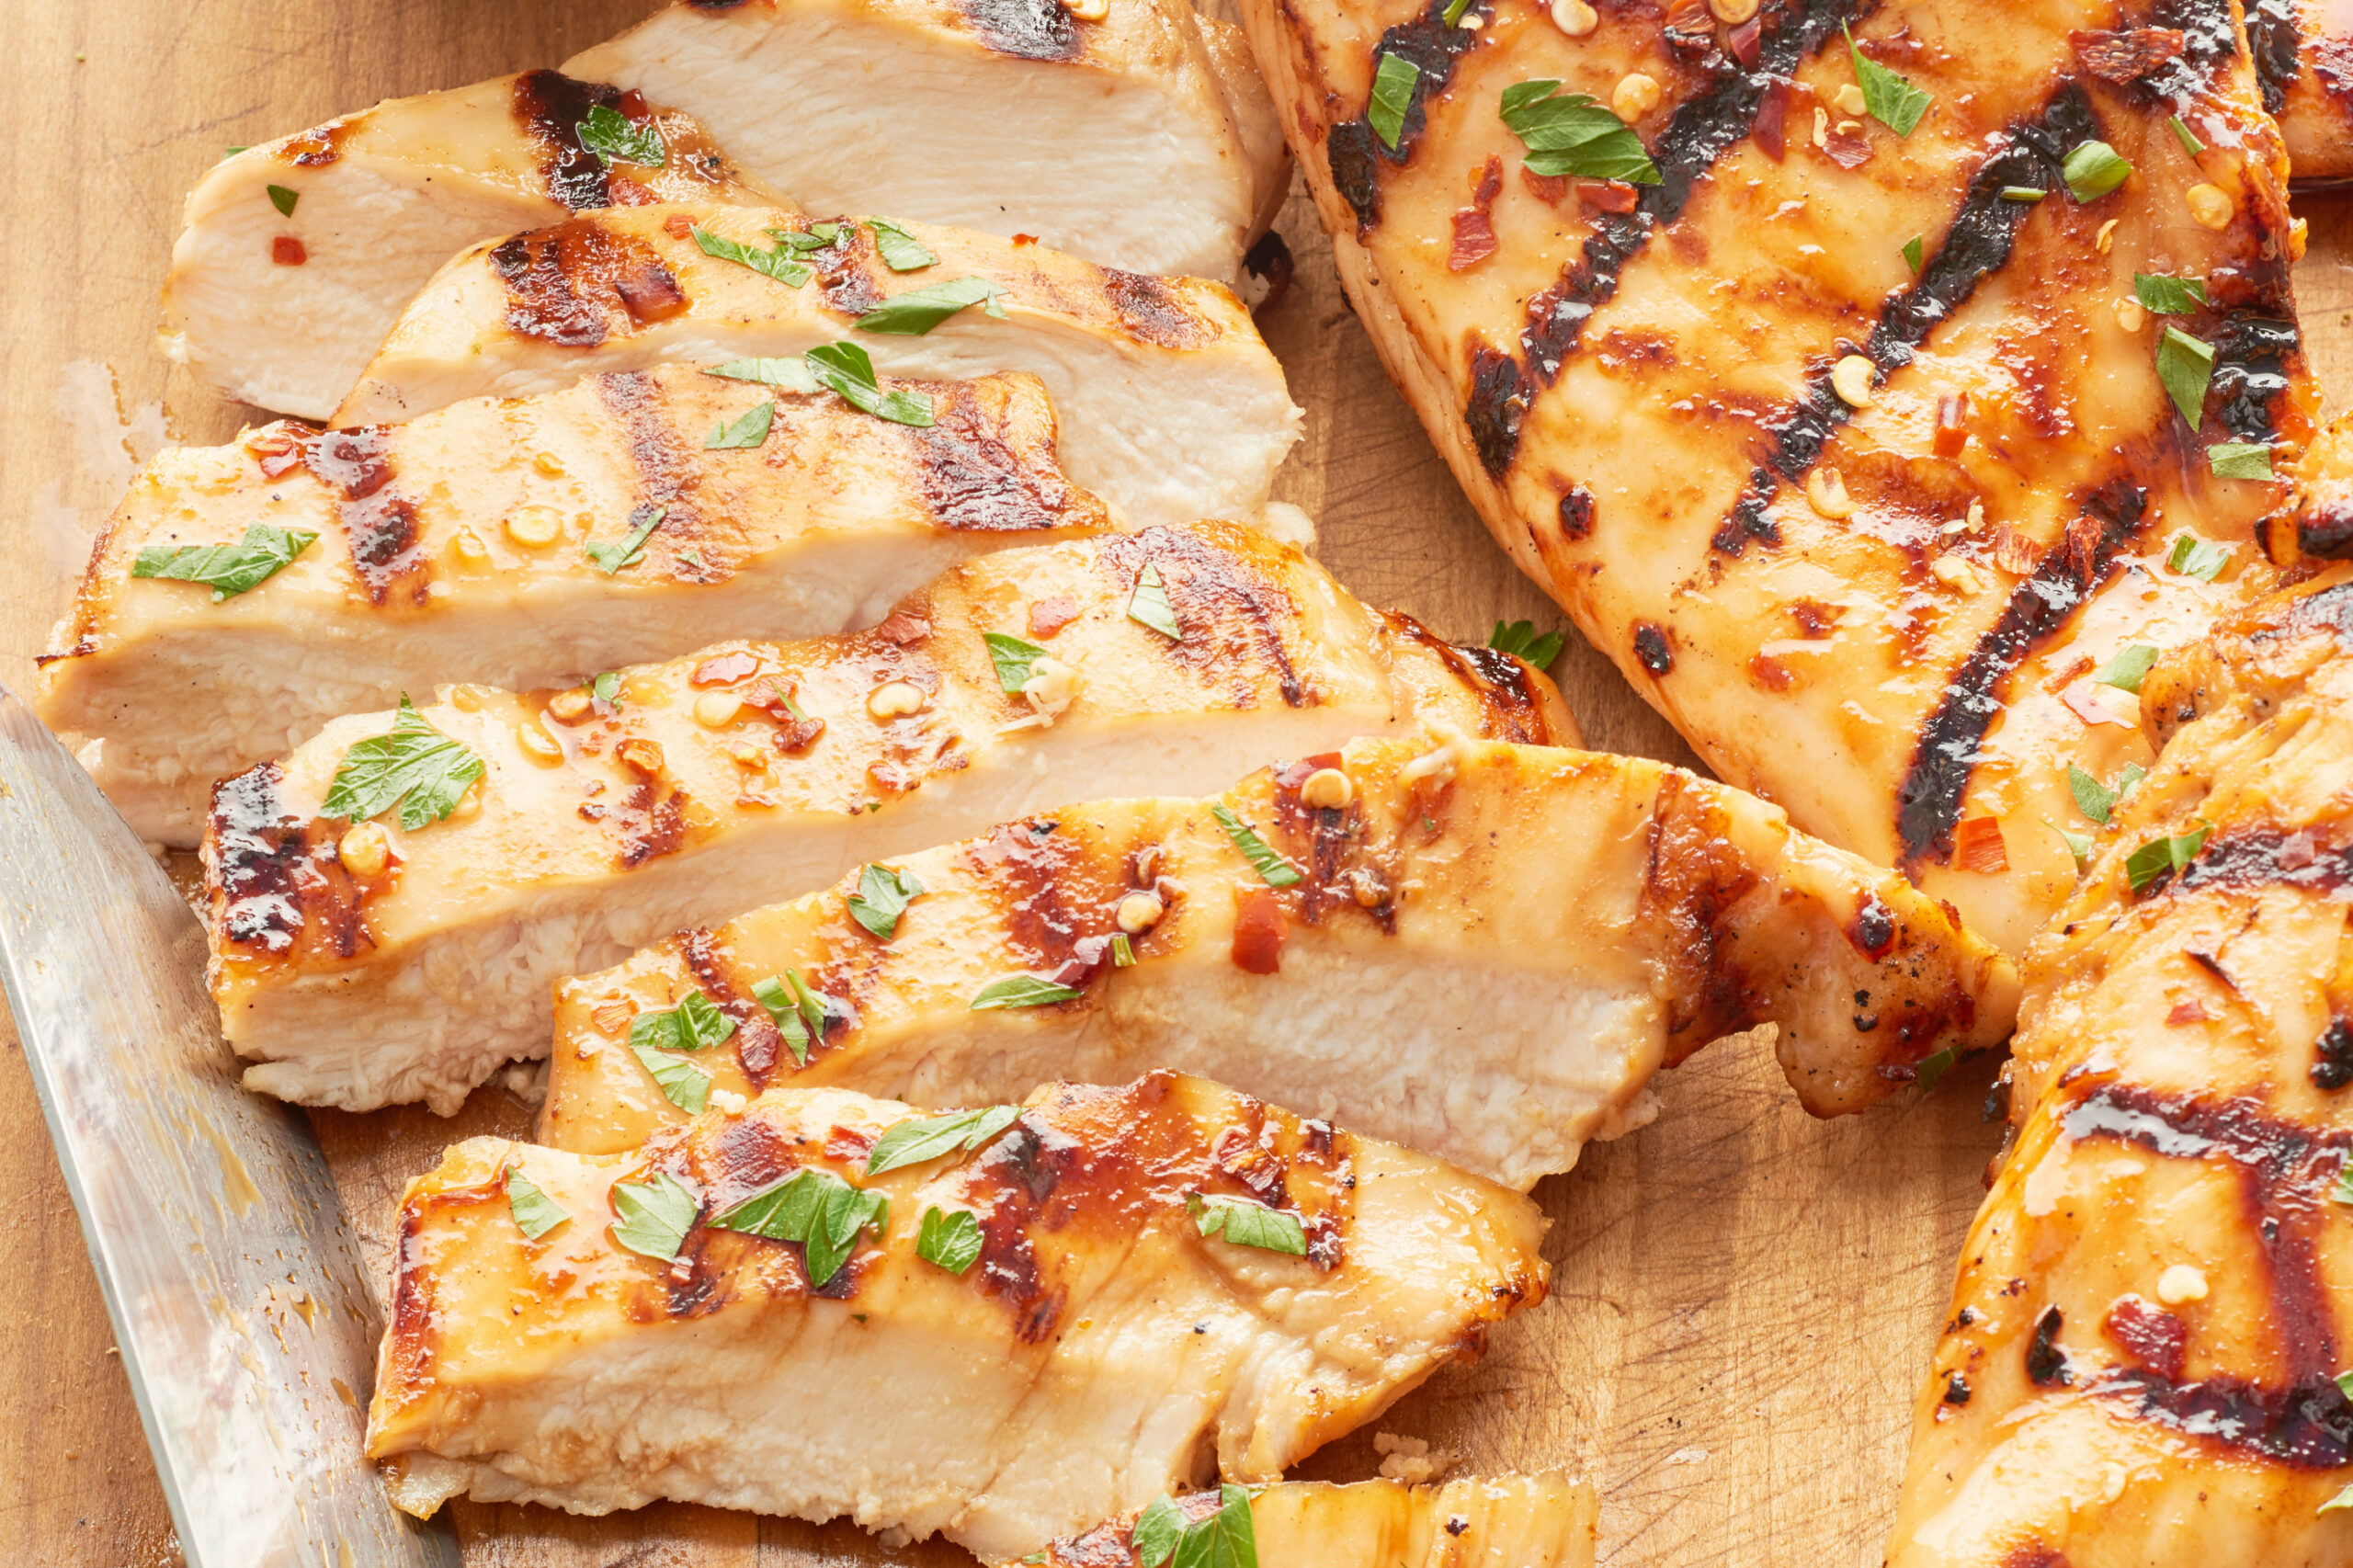 How To Make Juicy, Flavorful Grilled Chicken Breast - chicken recipes chicken breast